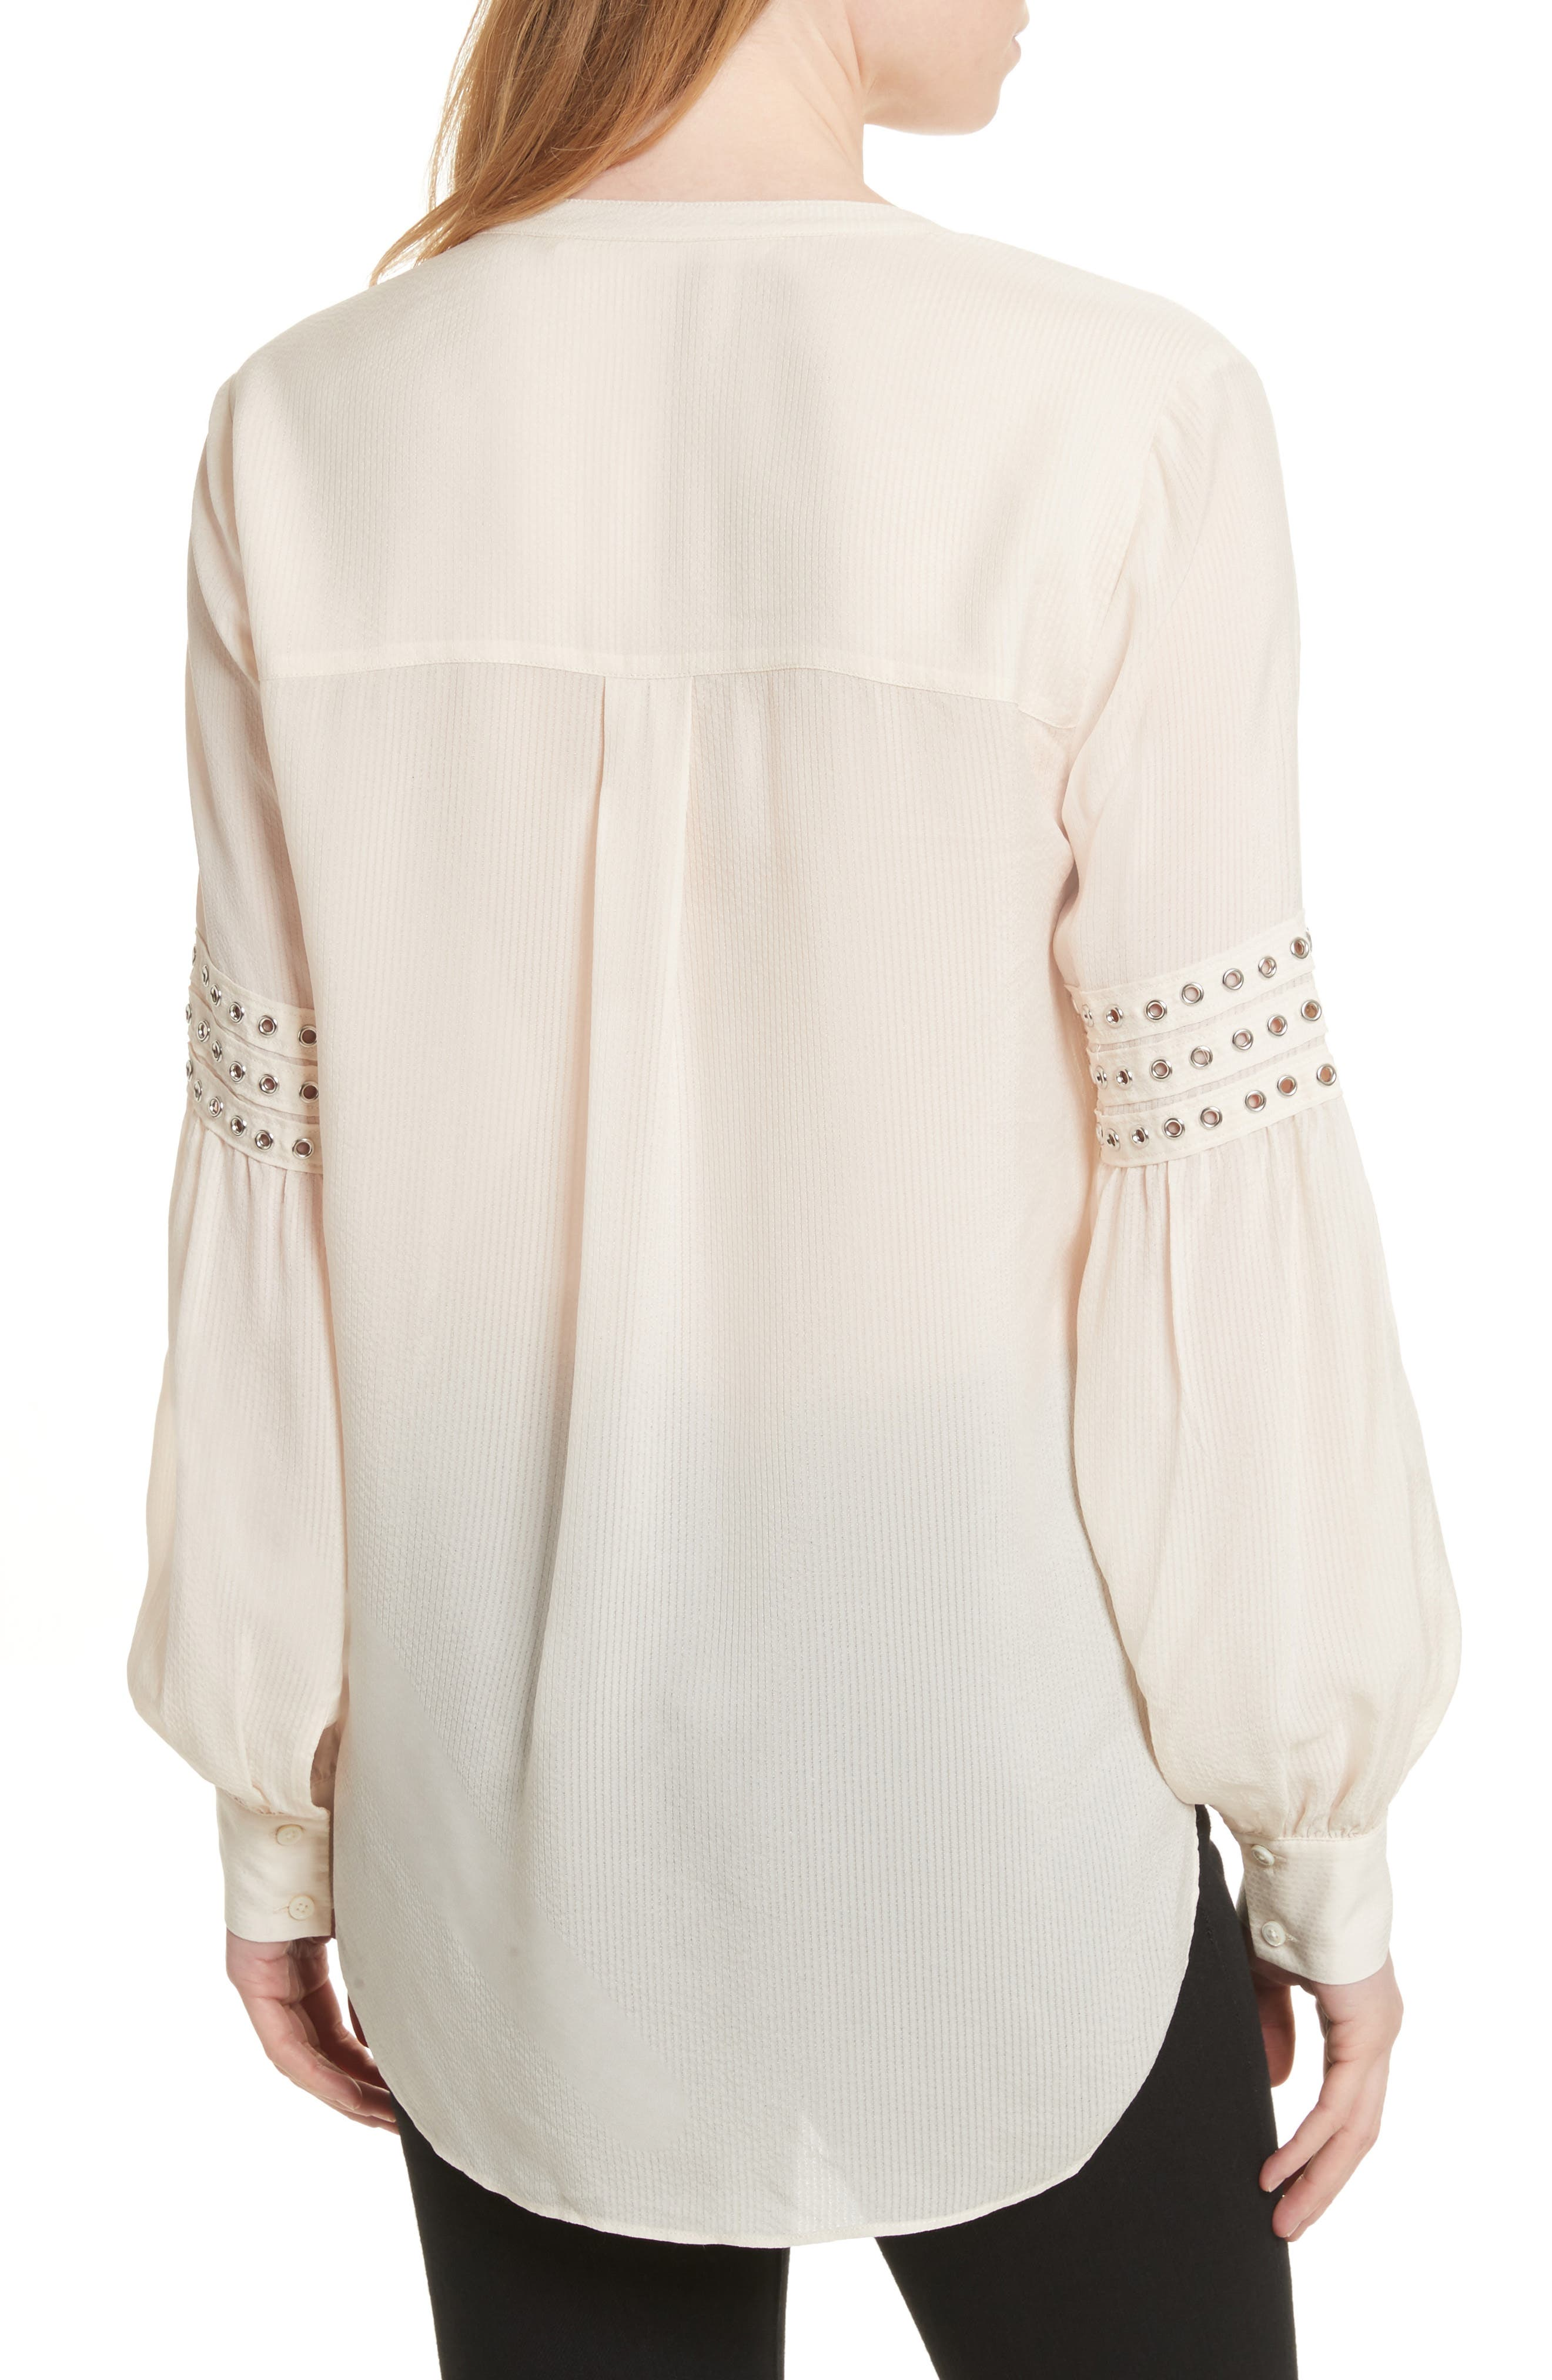 Willa Eyelet Trim Blouse,                             Alternate thumbnail 2, color,                             White